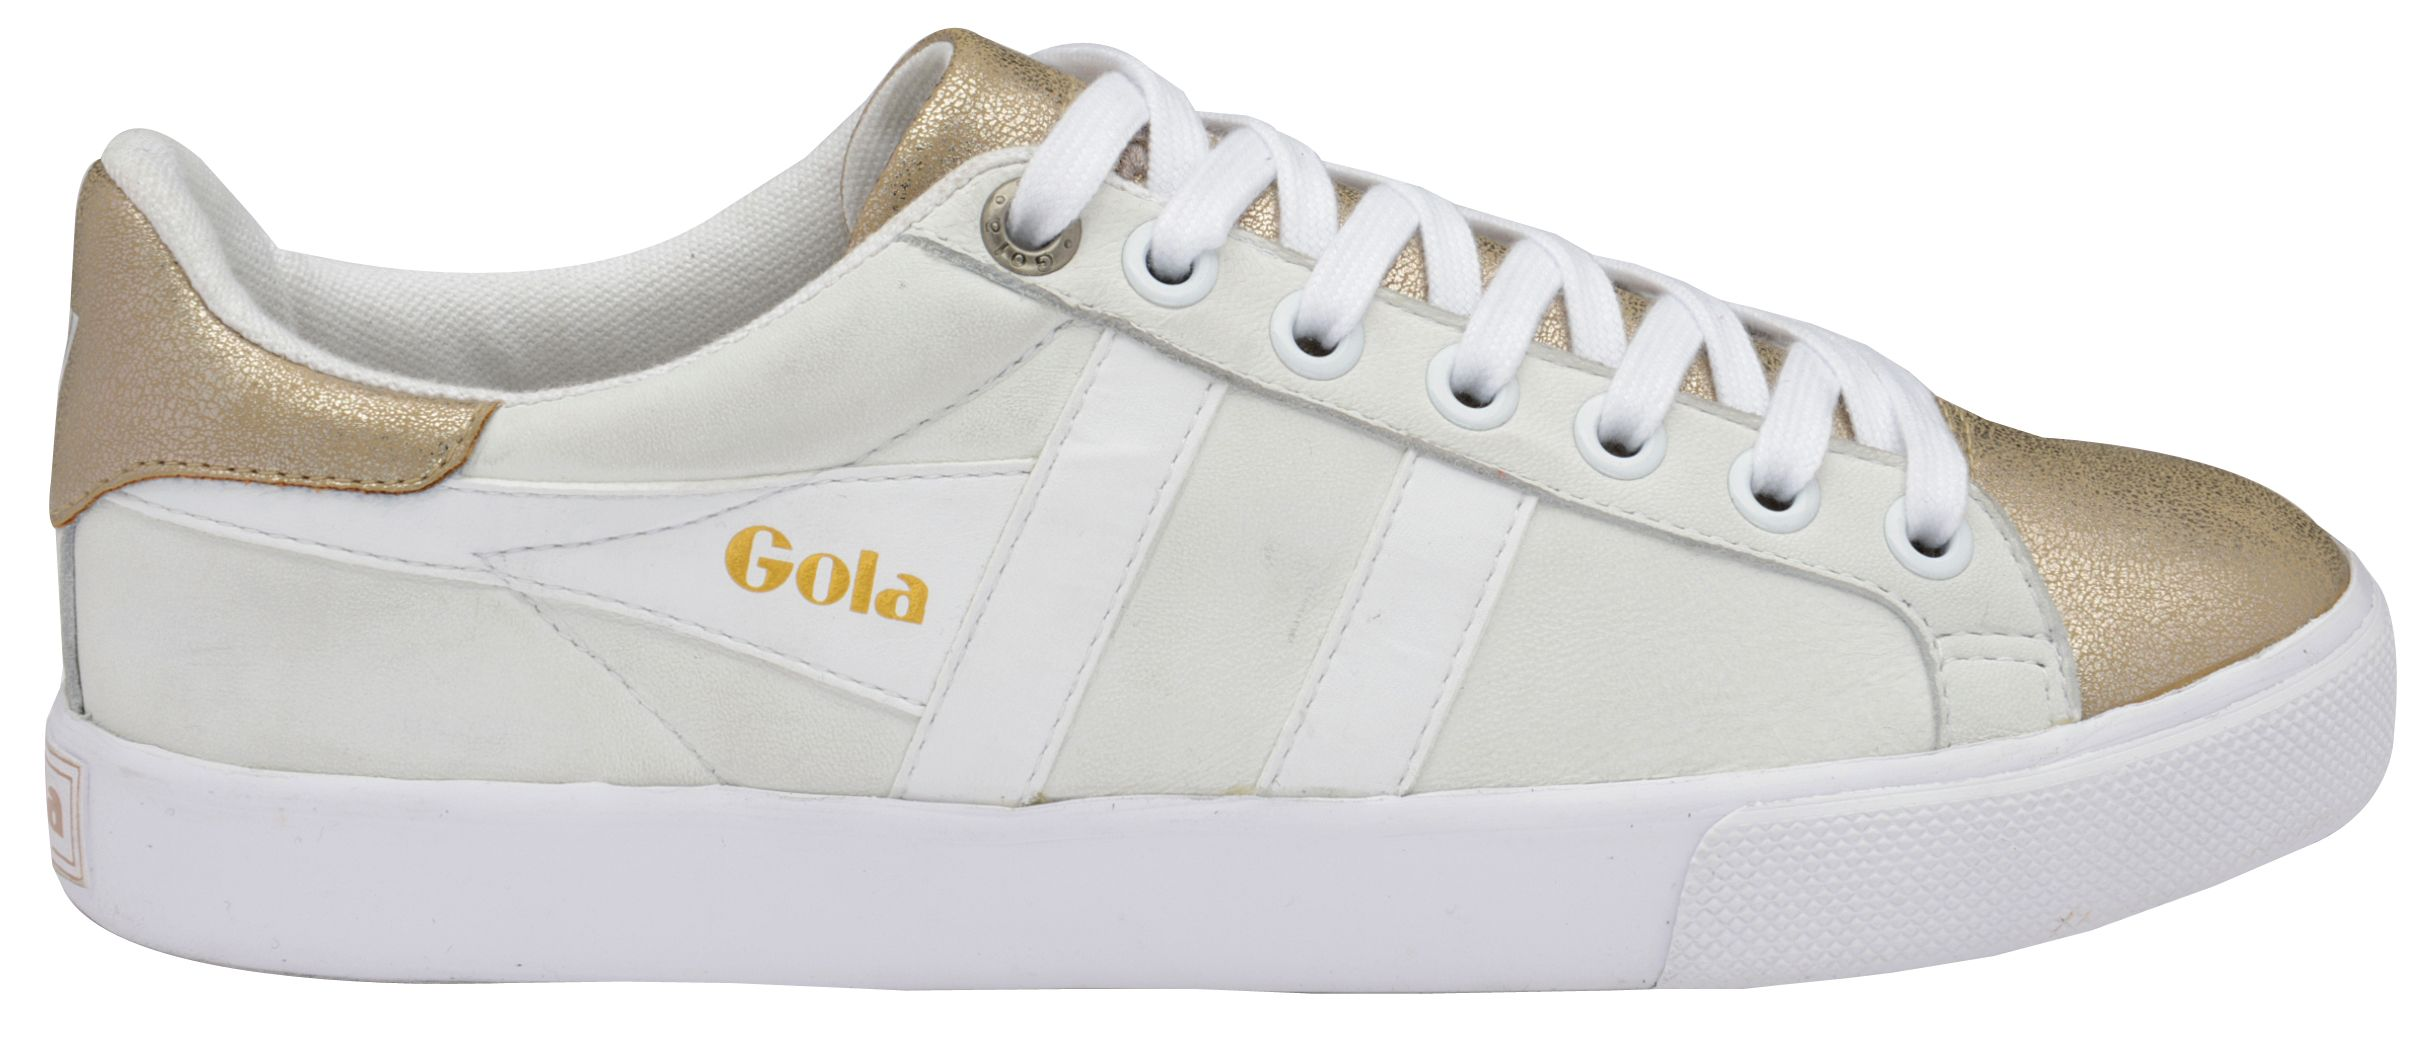 Gola Gola Orchid metallic lace up trainers, White